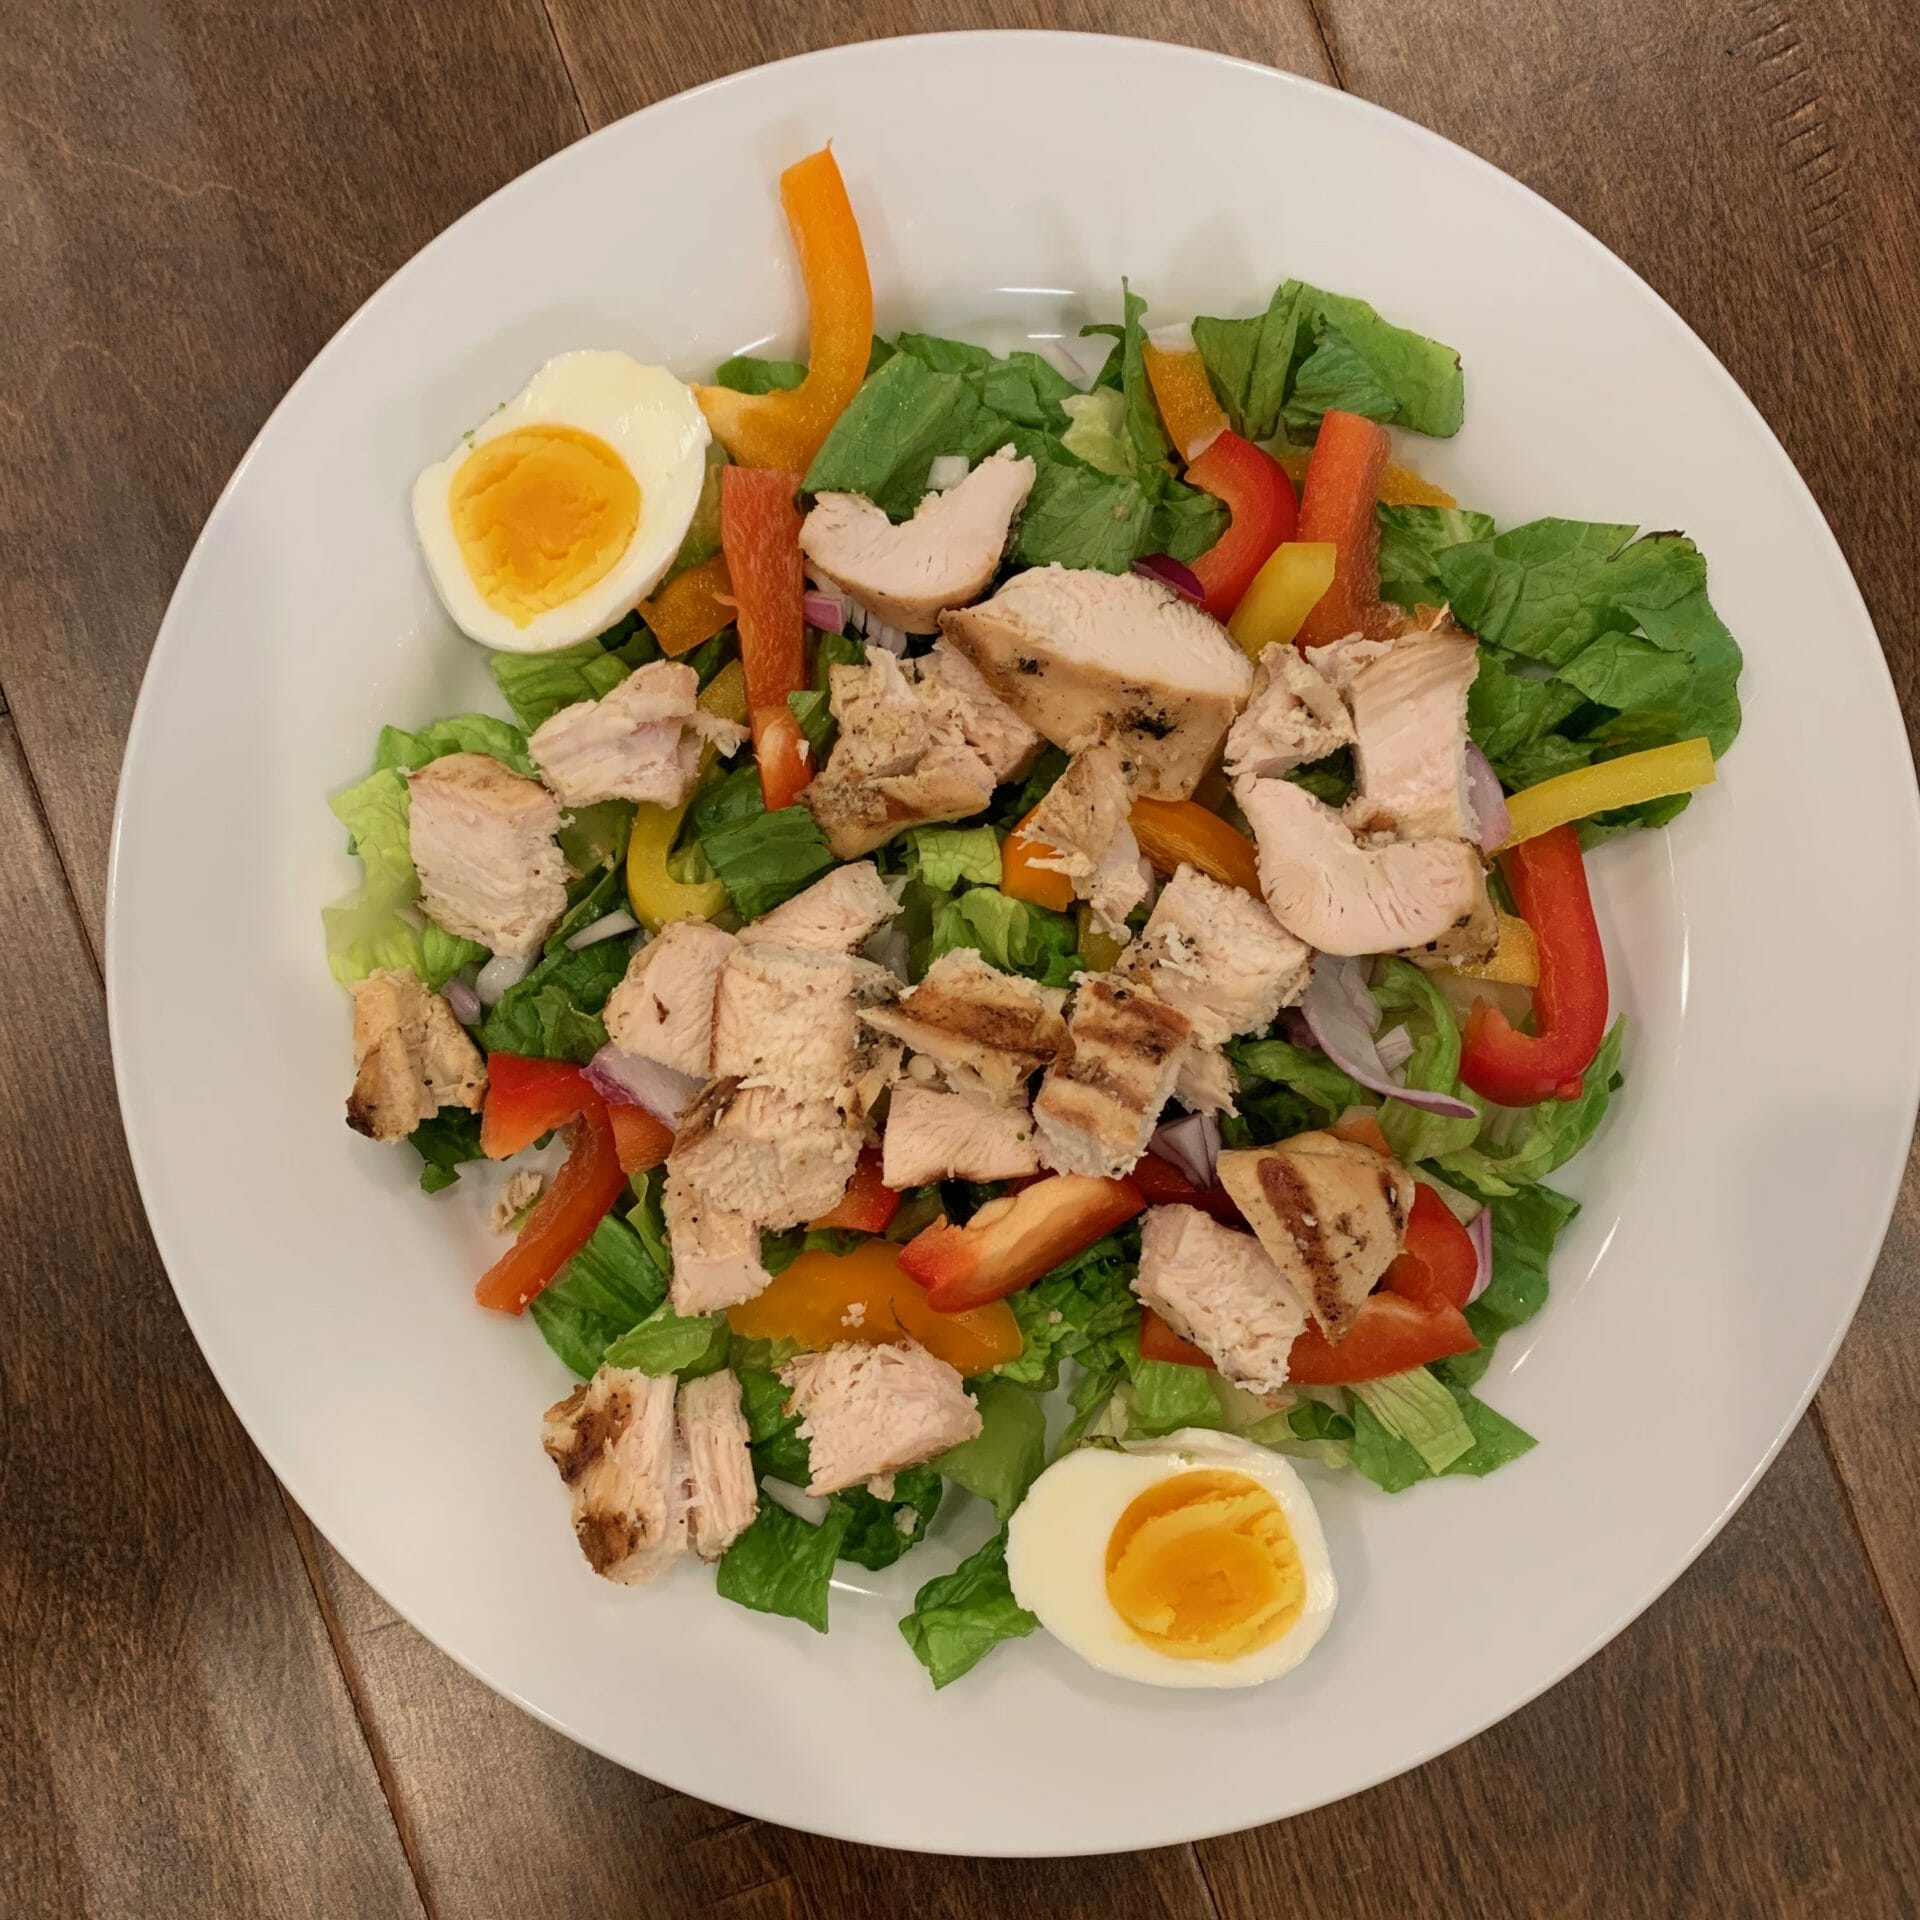 Salad with chunks of grilled chicken, lettuce, boiled eggs, peppers and onions